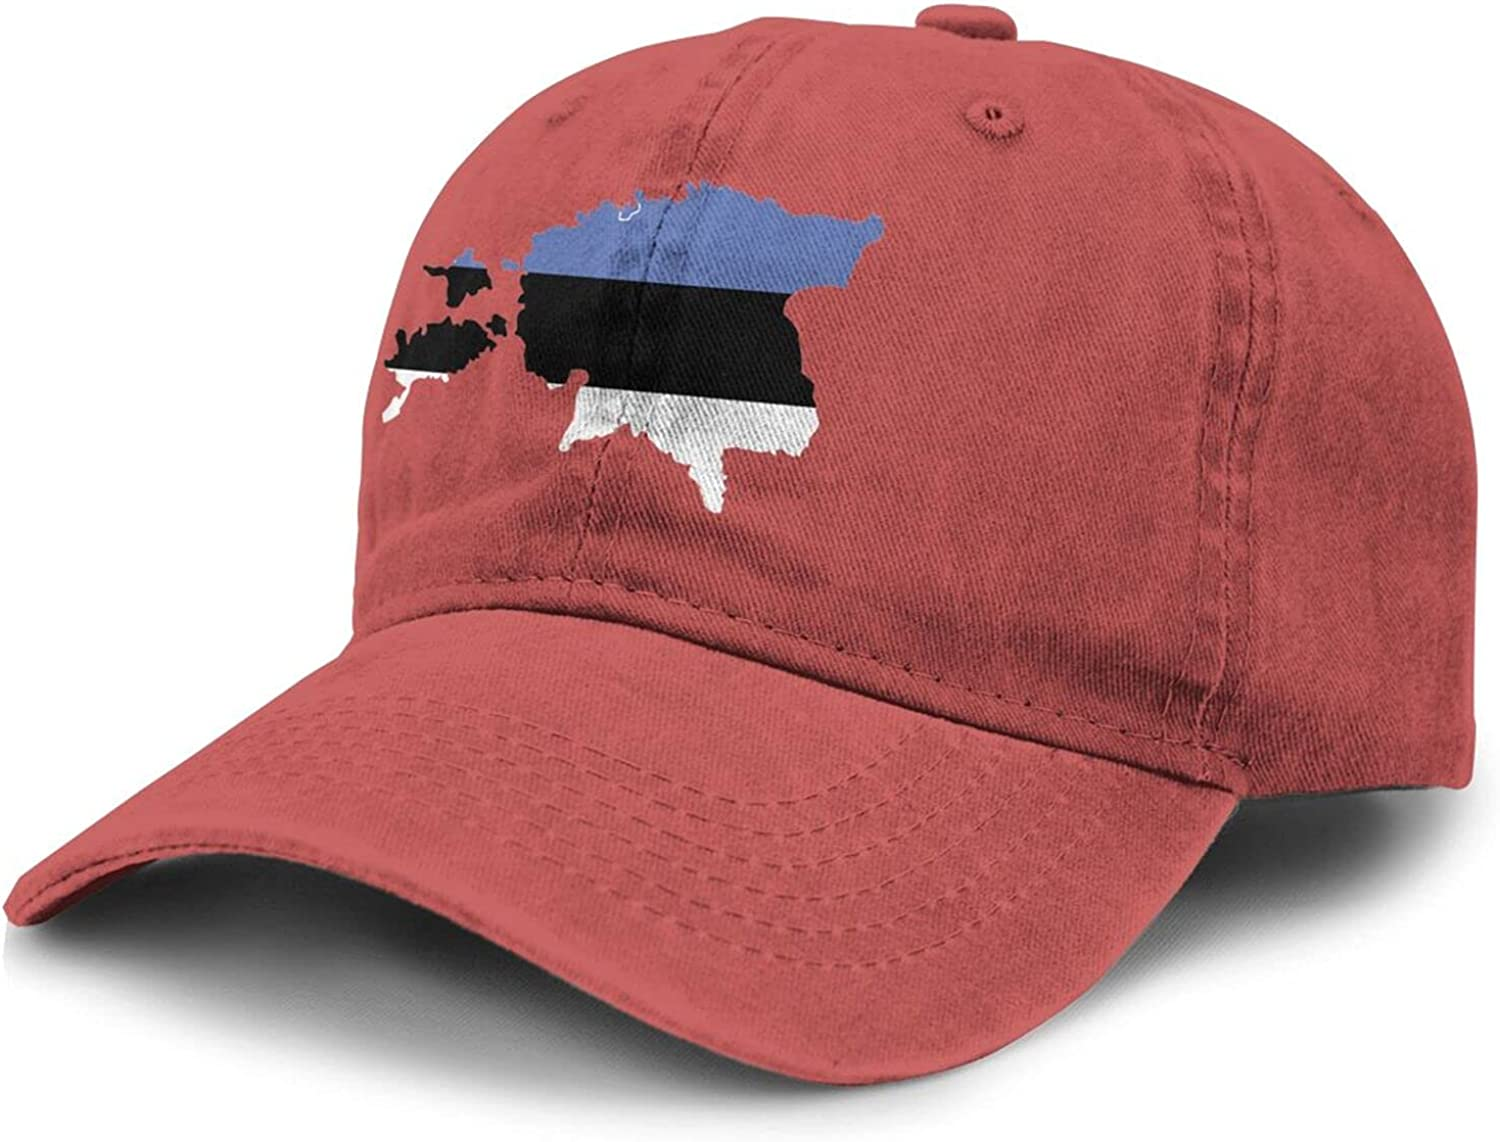 PARKNOTES Estonia Map Country of Europe Cheap and Durable Adult Cowboy Hat Unisex